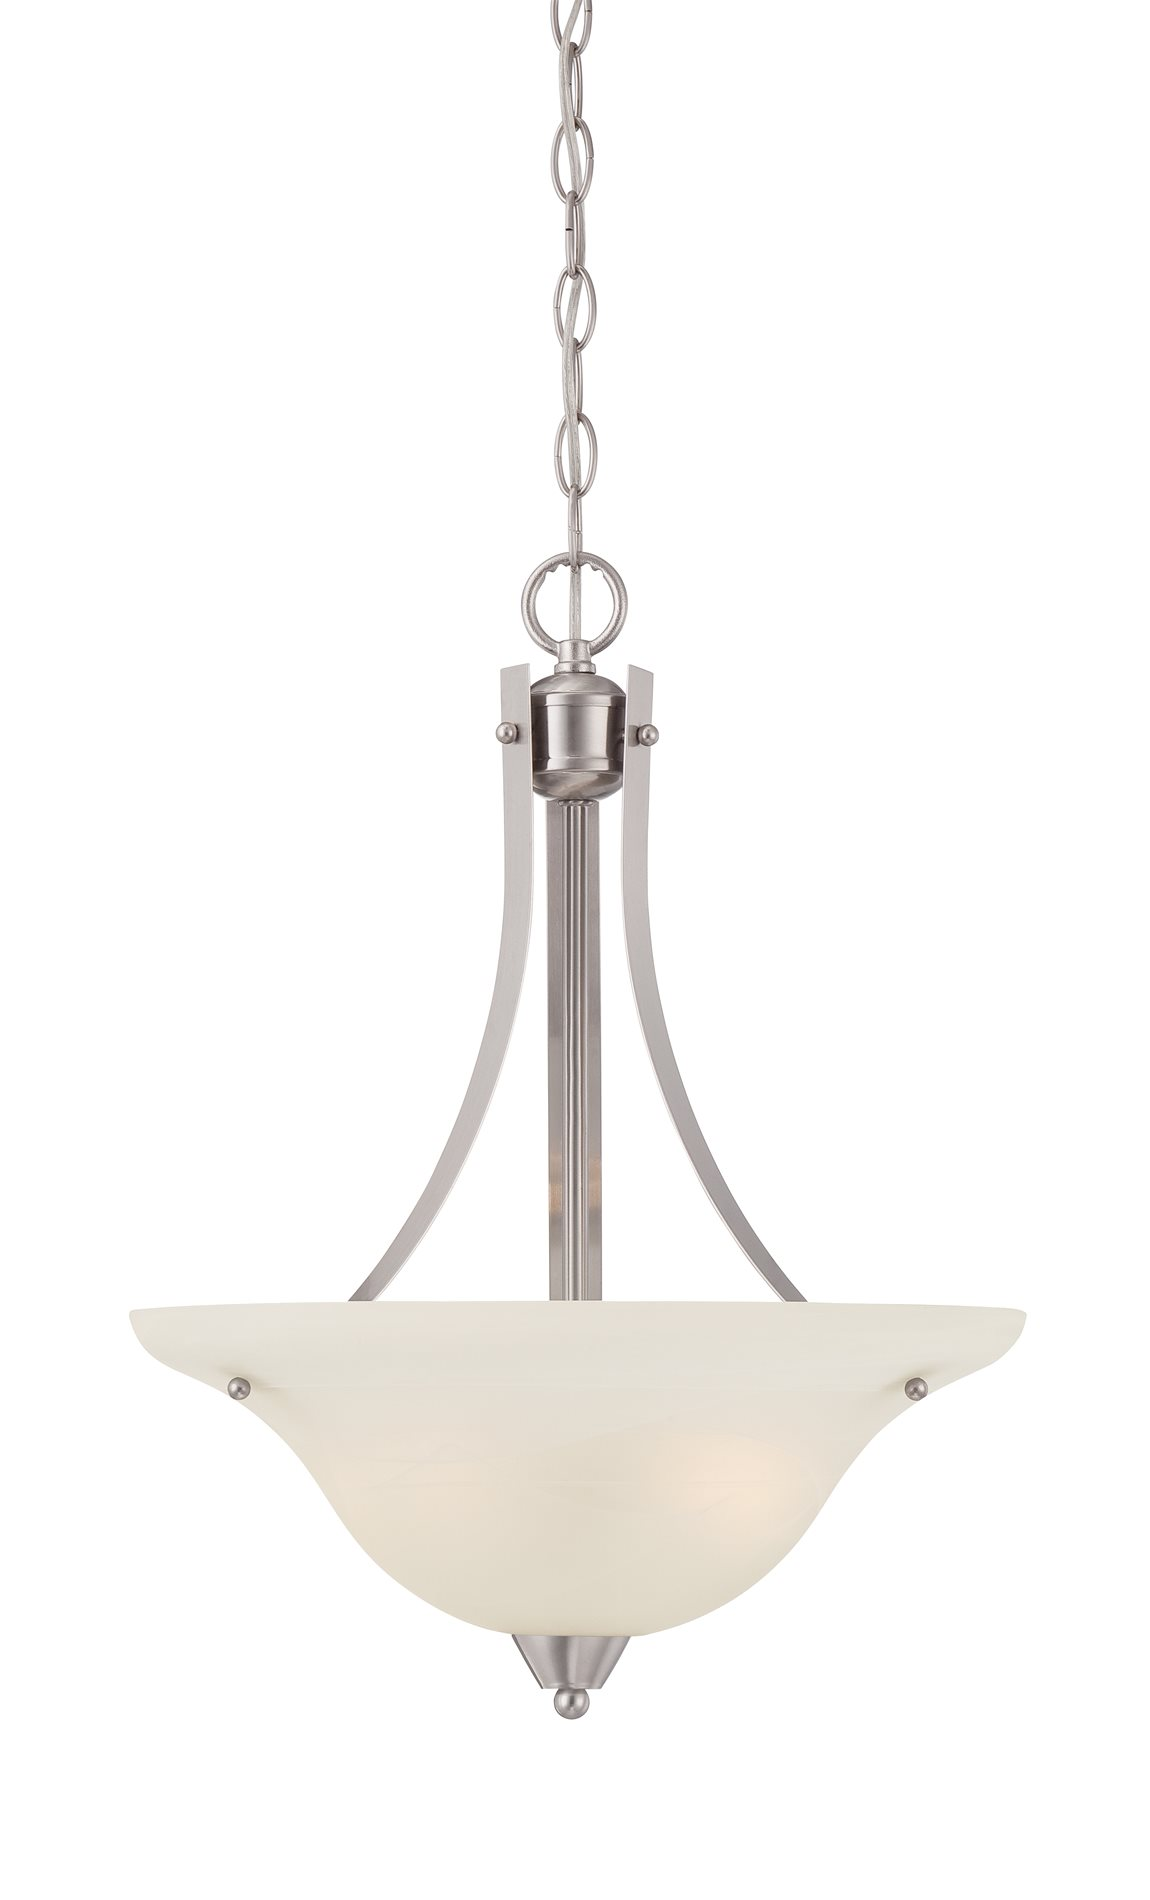 Designers Fountain Lighting Designers Fountain 15005 Ip 35 Torino Pendant Light Df